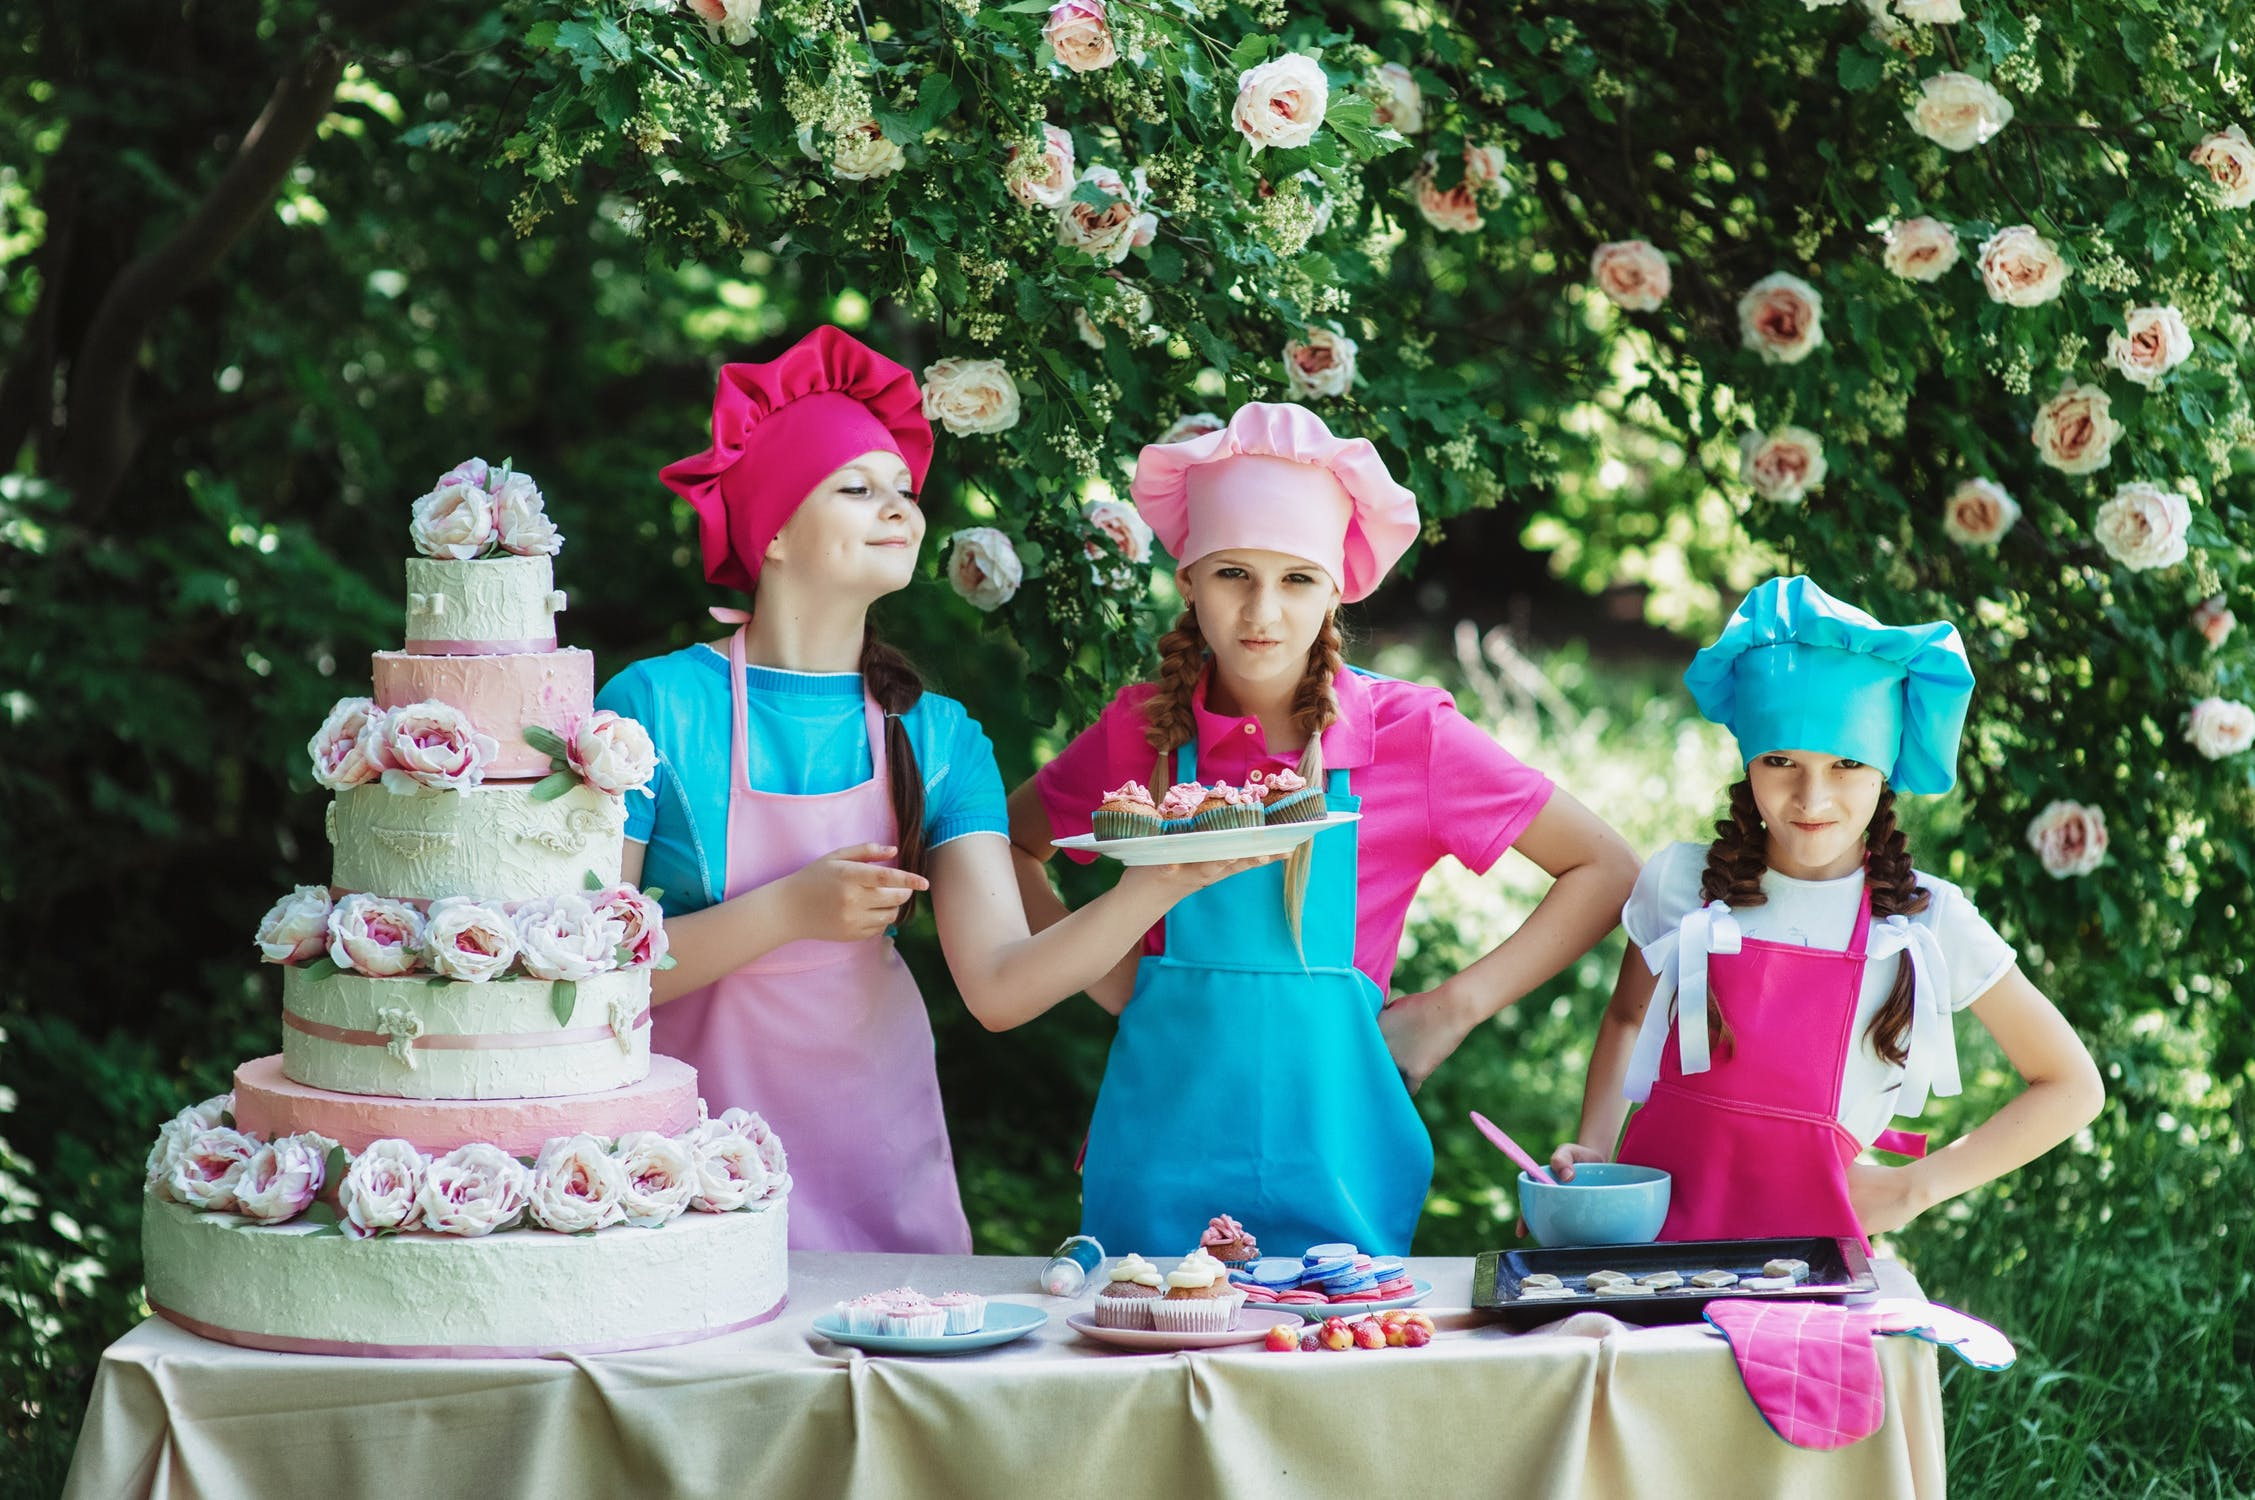 Everything You Need for a Fun Child's Birthday Party